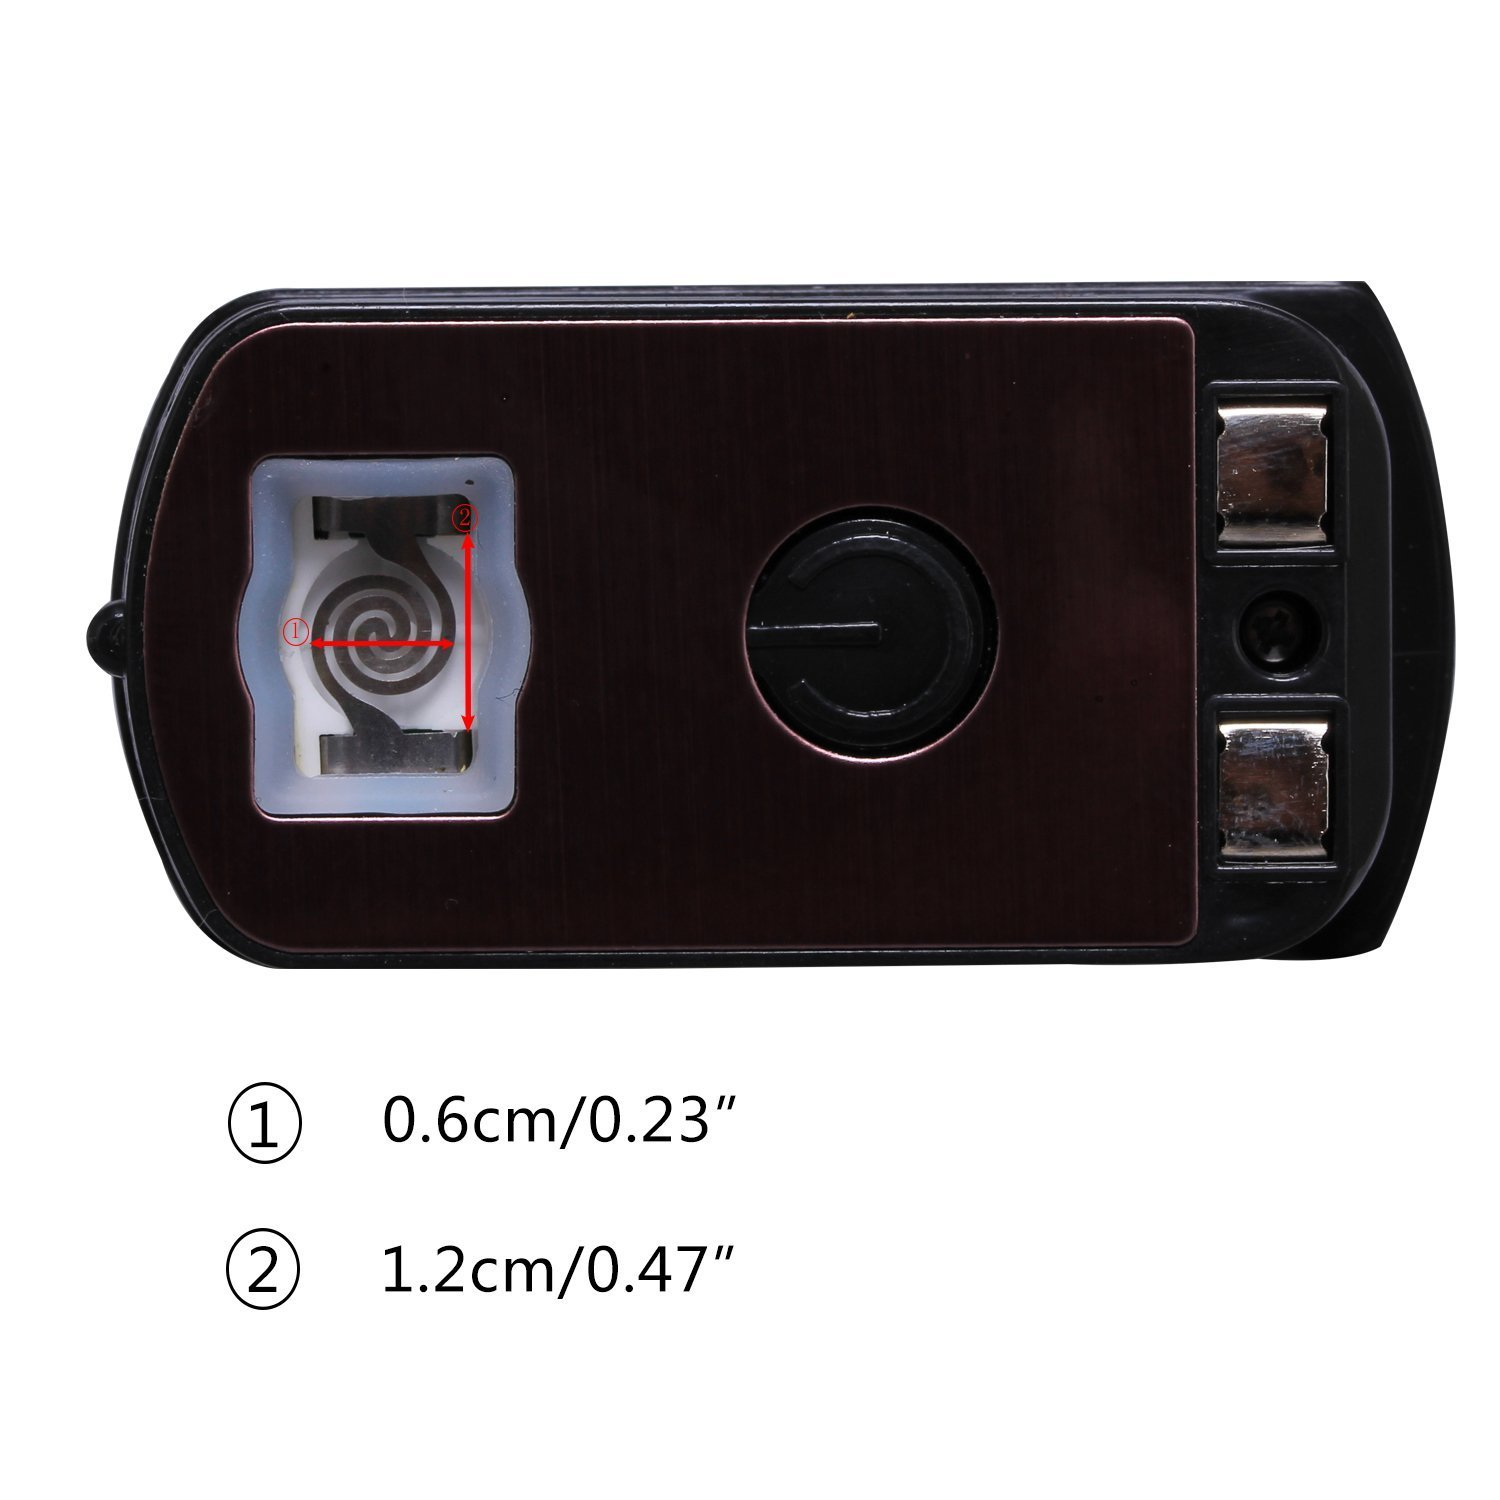 Home Car Ashtray with Lid Blue LED Light Indicator for Car eJiasu Car Ashtray Car Ashtray Lighter Set Detachable Office and Travel 4350411763